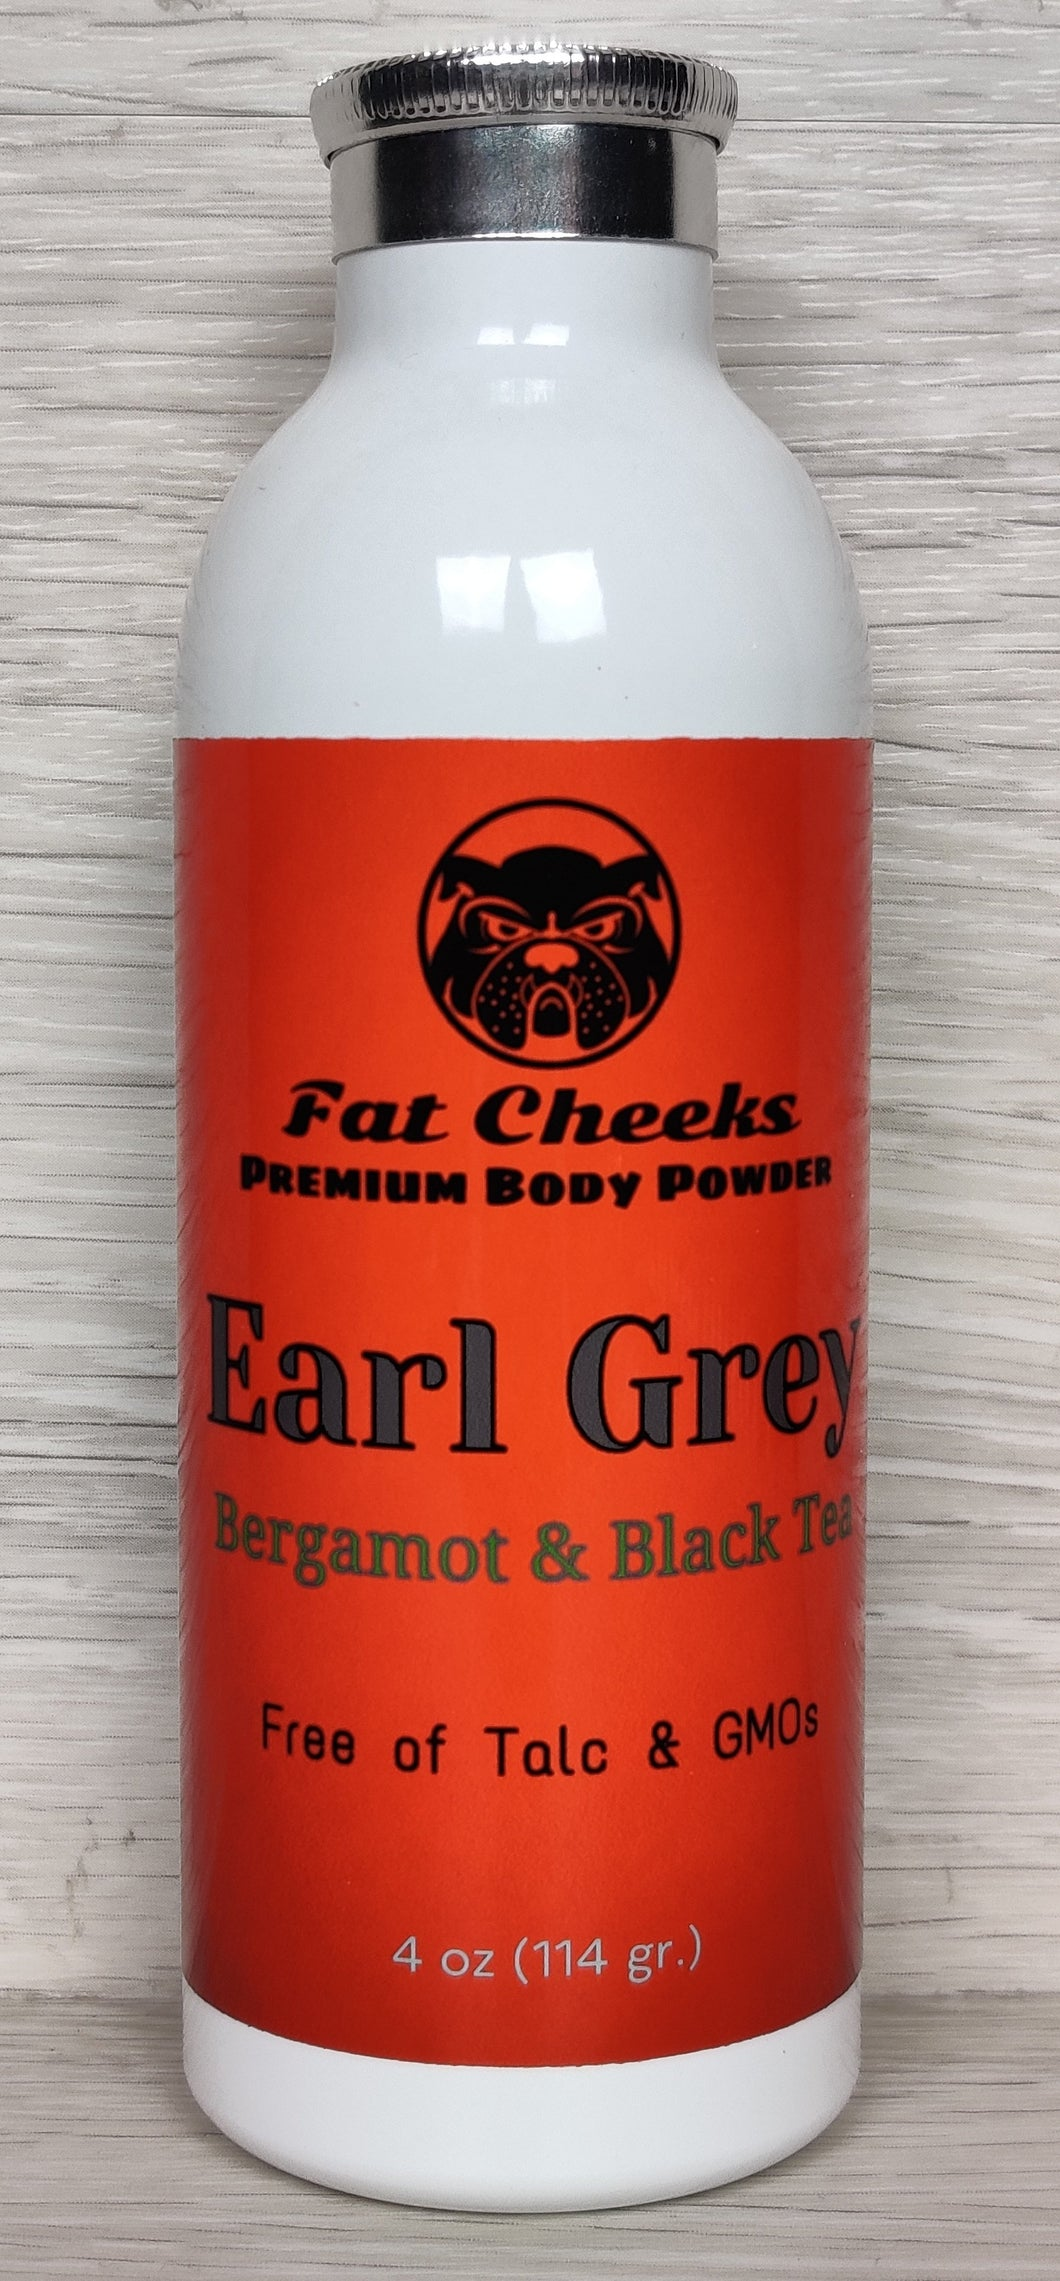 Earl Grey Black Tea and Bergamot Fat Cheeks talc free Body Powder, Ball Powder, Foot Powder, Dry Shampoo, barbershop and spray tan dry down powder